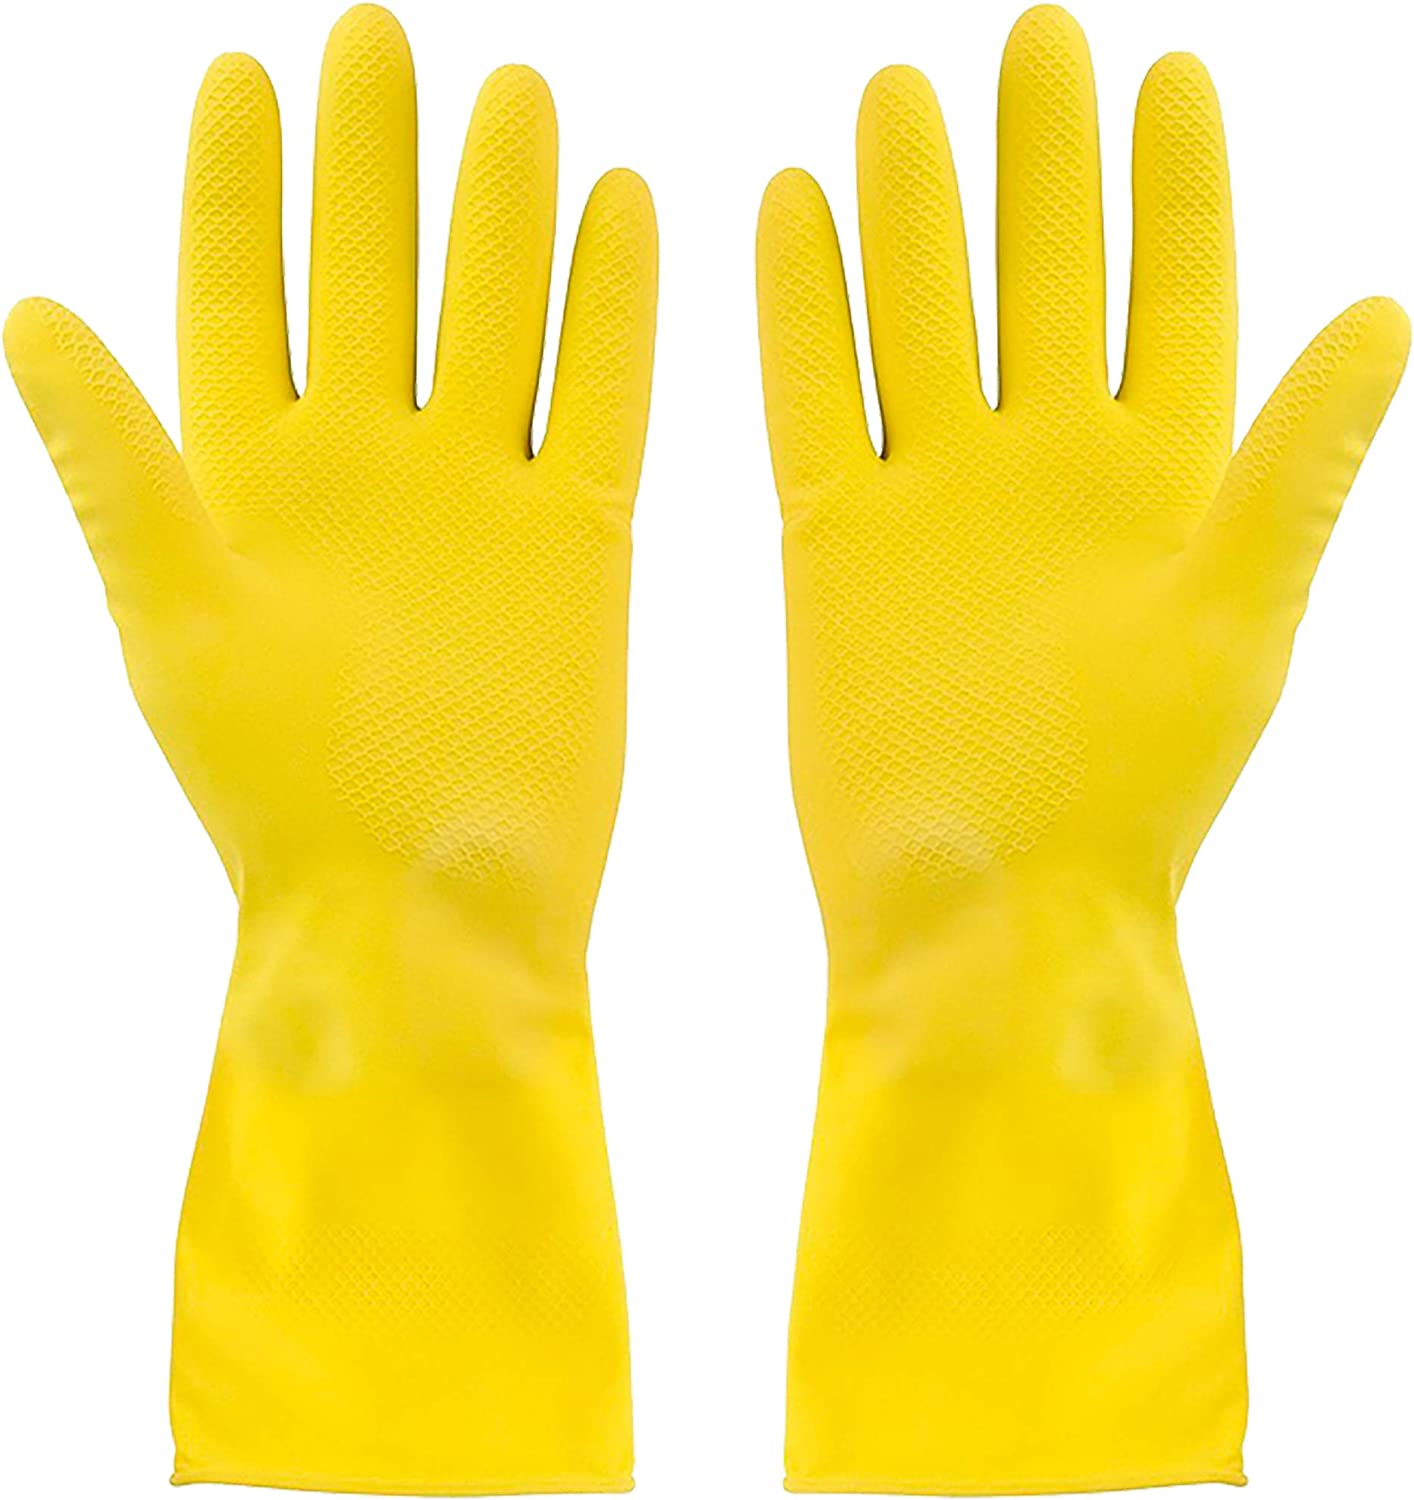 SteadMax 3 Pack Yellow Cleaning Gloves, Professional Natural Rubber Latex Gloves, Large Size (3 Pairs) : Health & Household